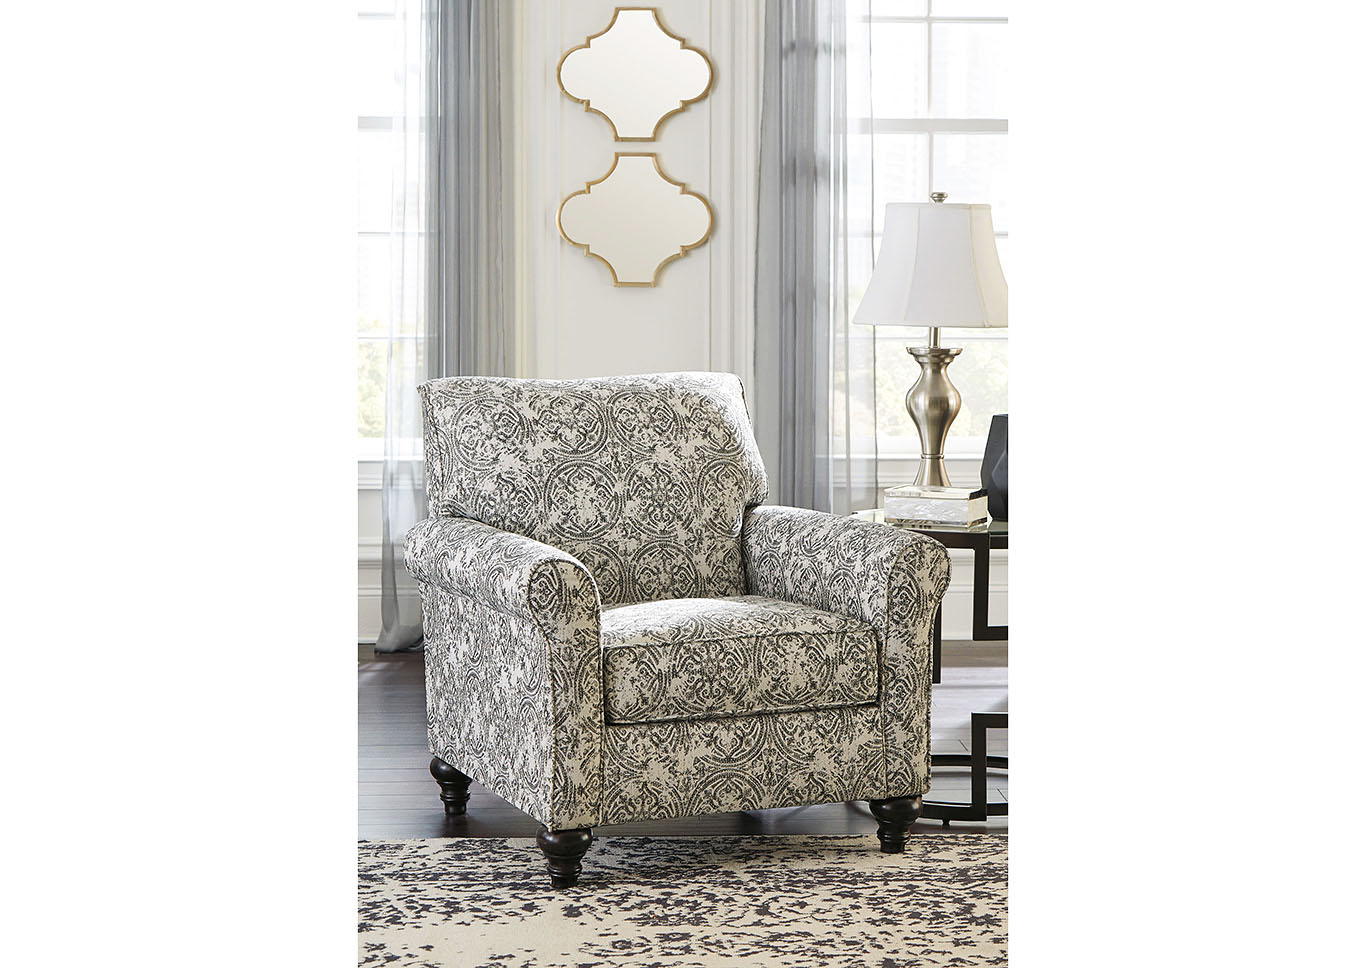 Praylor Slate Accent Chair,Signature Design By Ashley